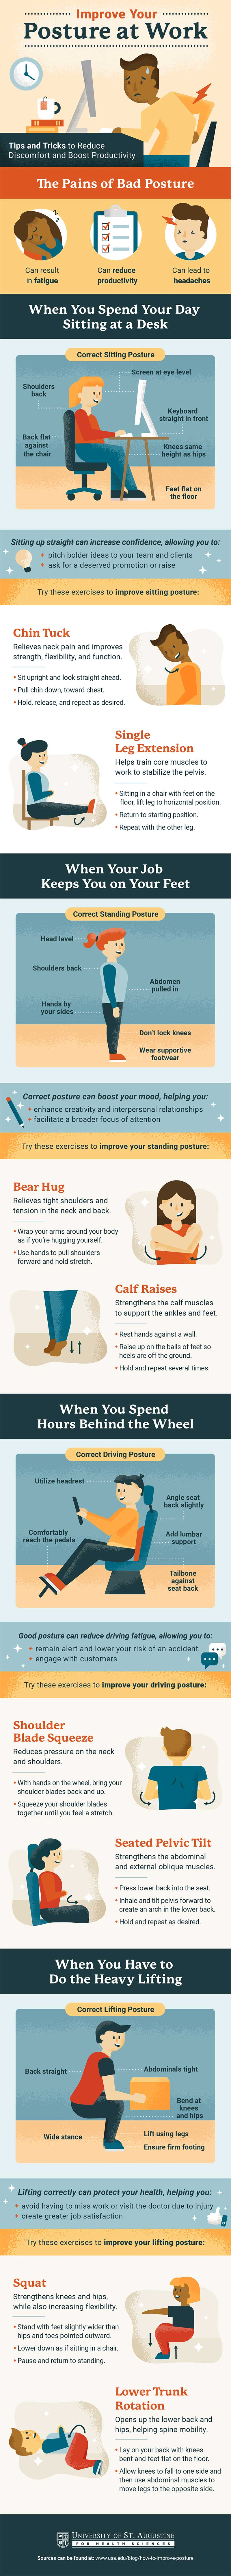 How to Improve your Posture at Work